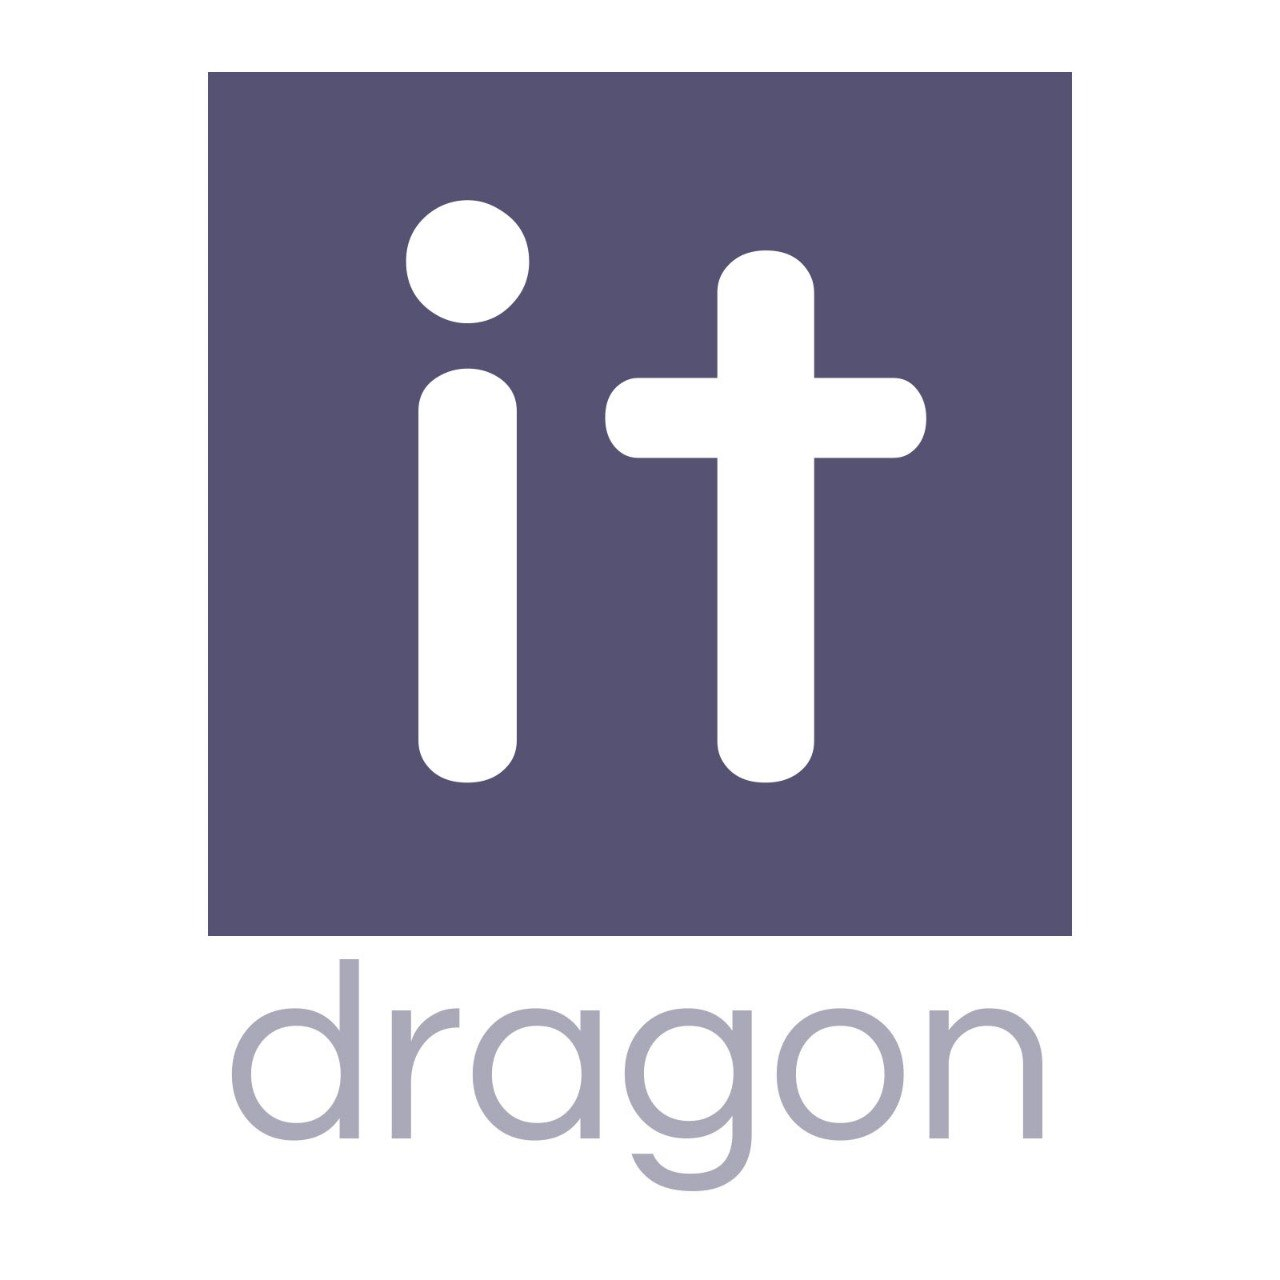 it dragon  Font,Logo,Text,Symbol,Line